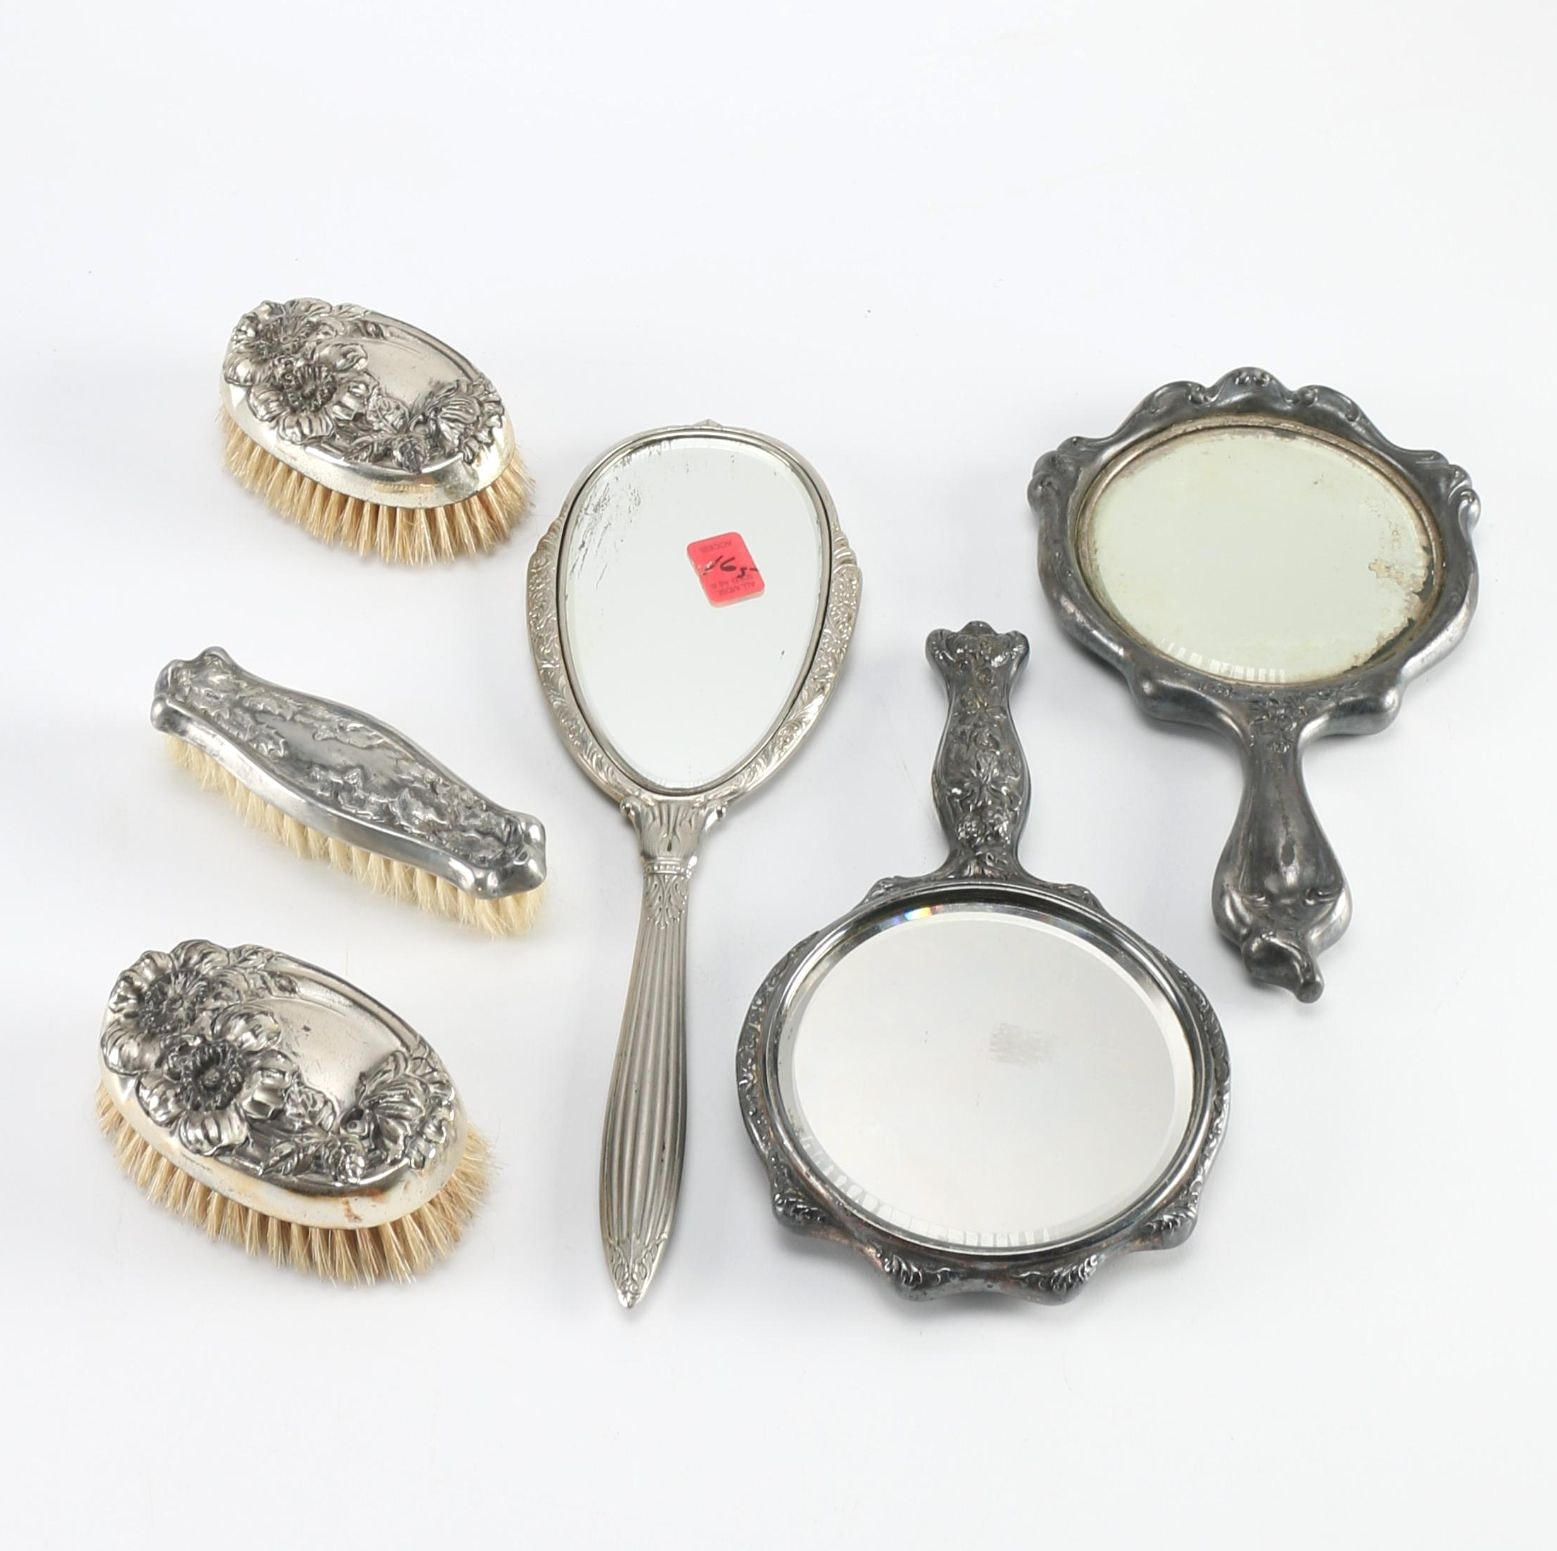 Early 20th Century Silver Plate Hand Mirrors and Brushes